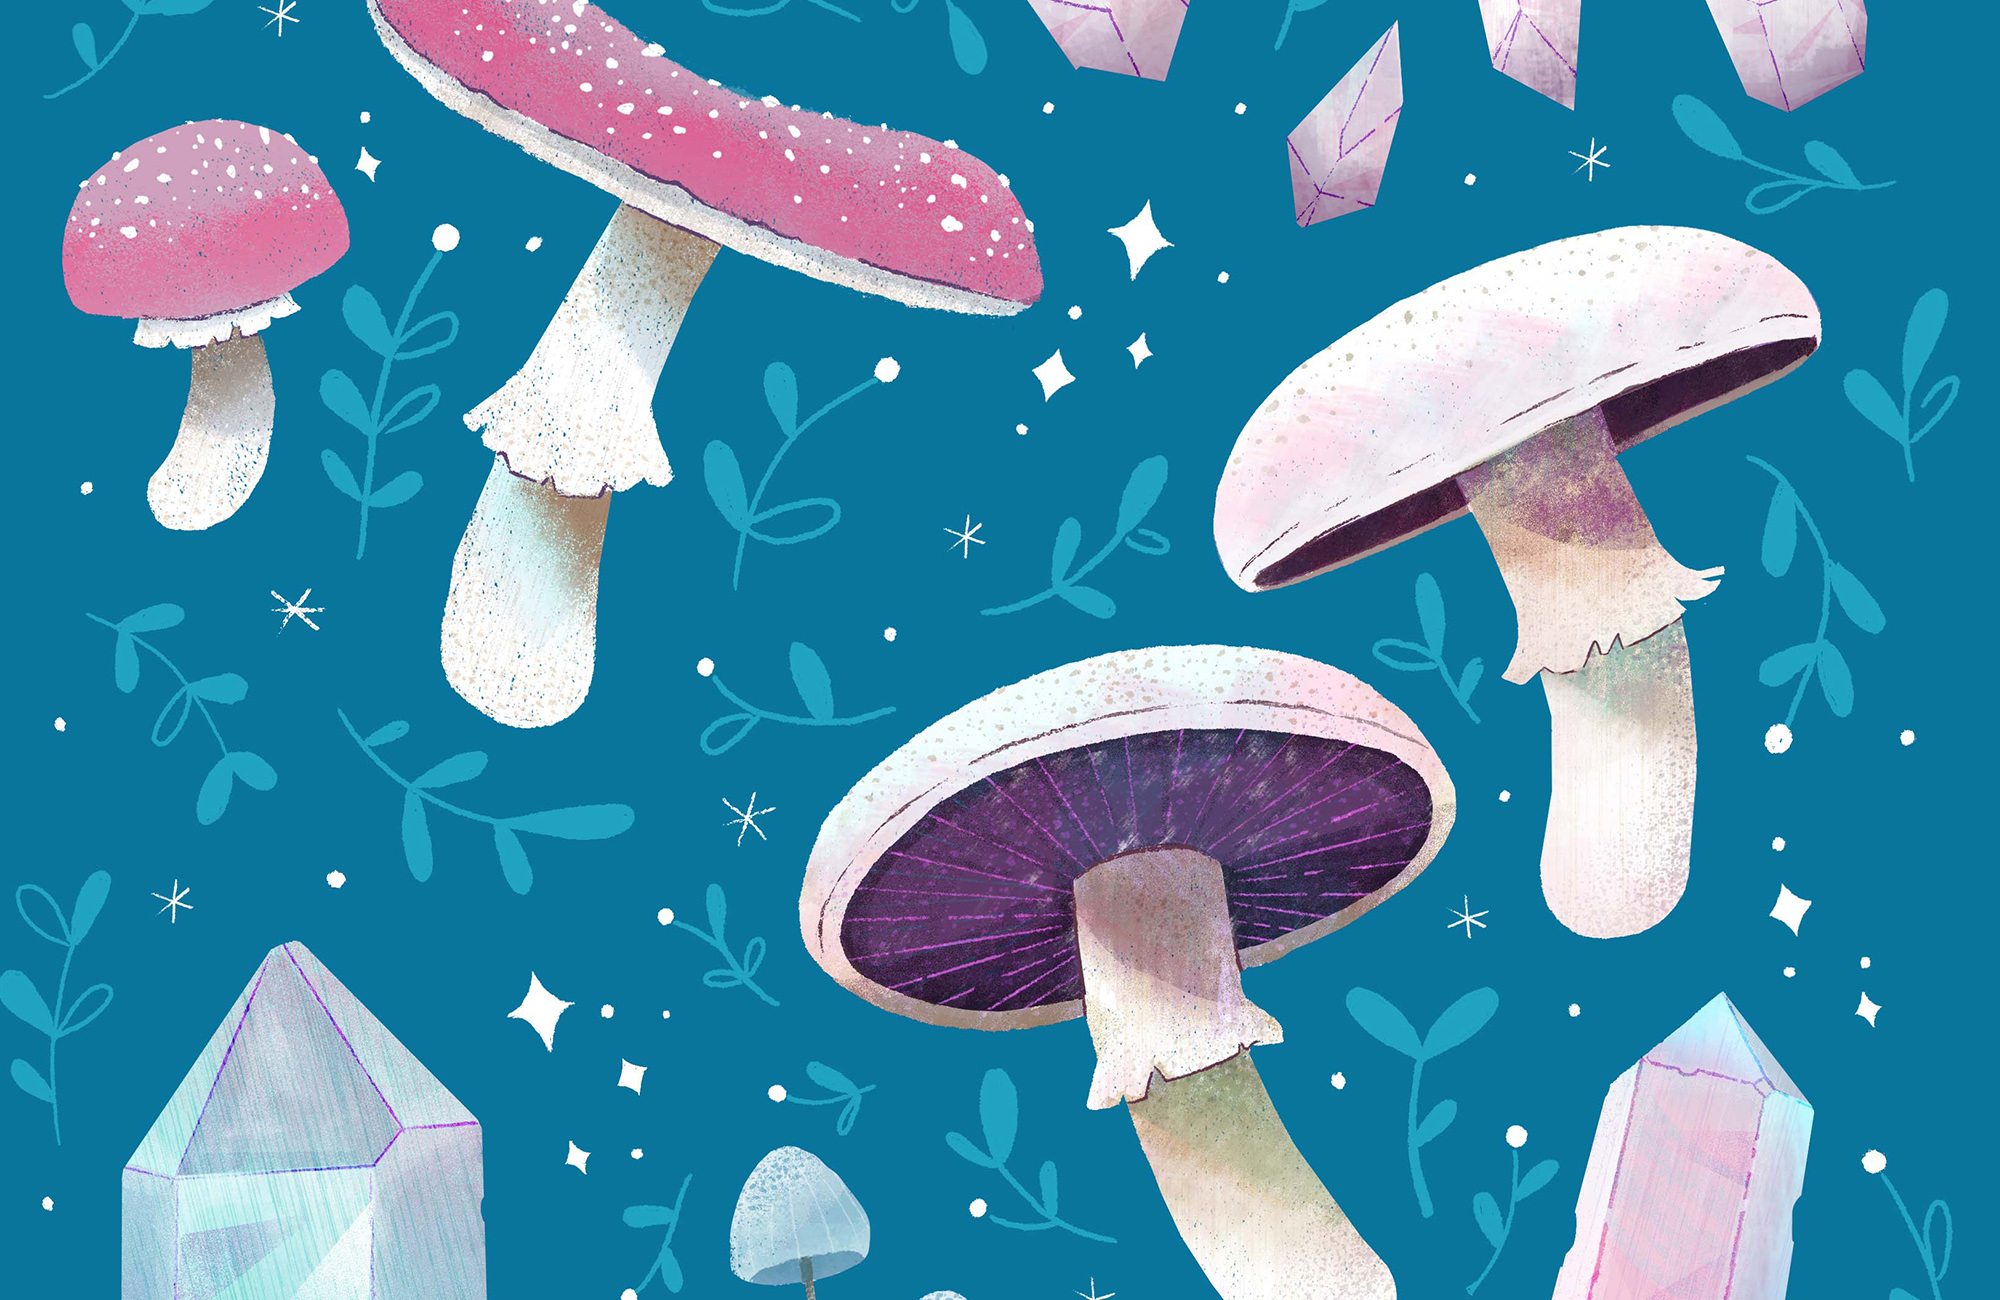 Robin_Sheldon_Mushroom_crystal_illustration.jpg